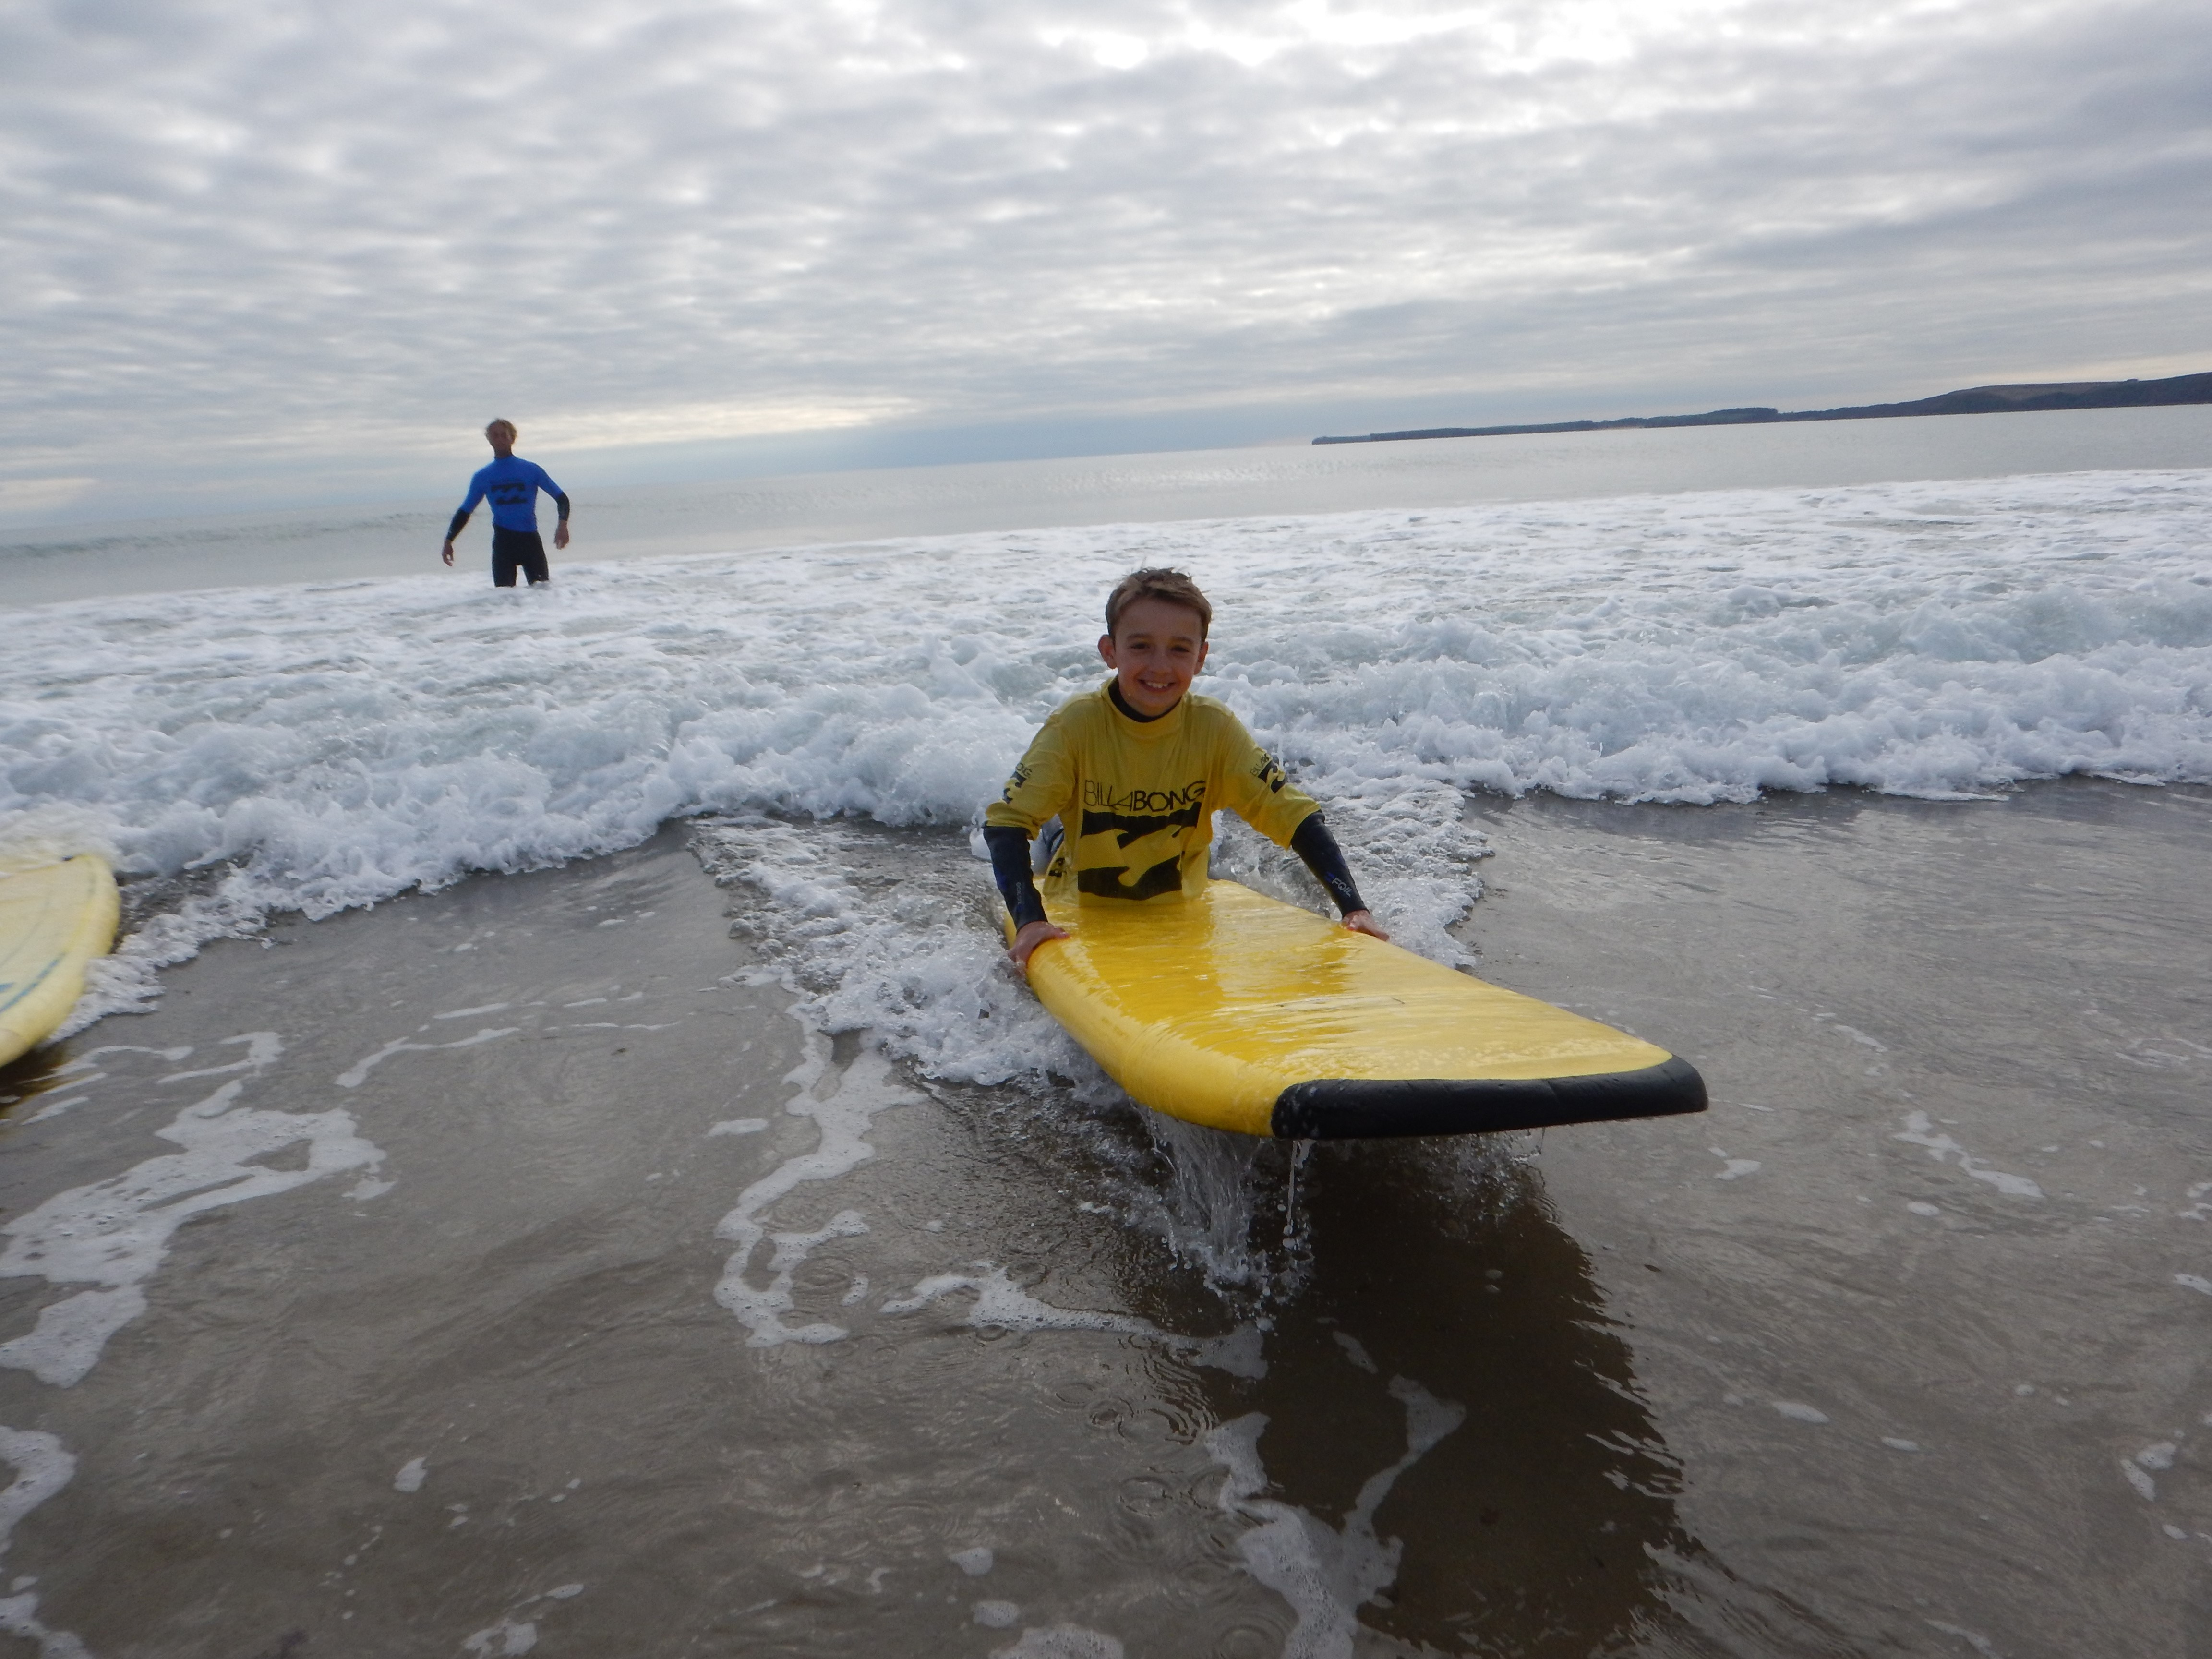 Surf Lessons In Pembrokeshire, Wales | Learn To Surf In Pembrokeshire